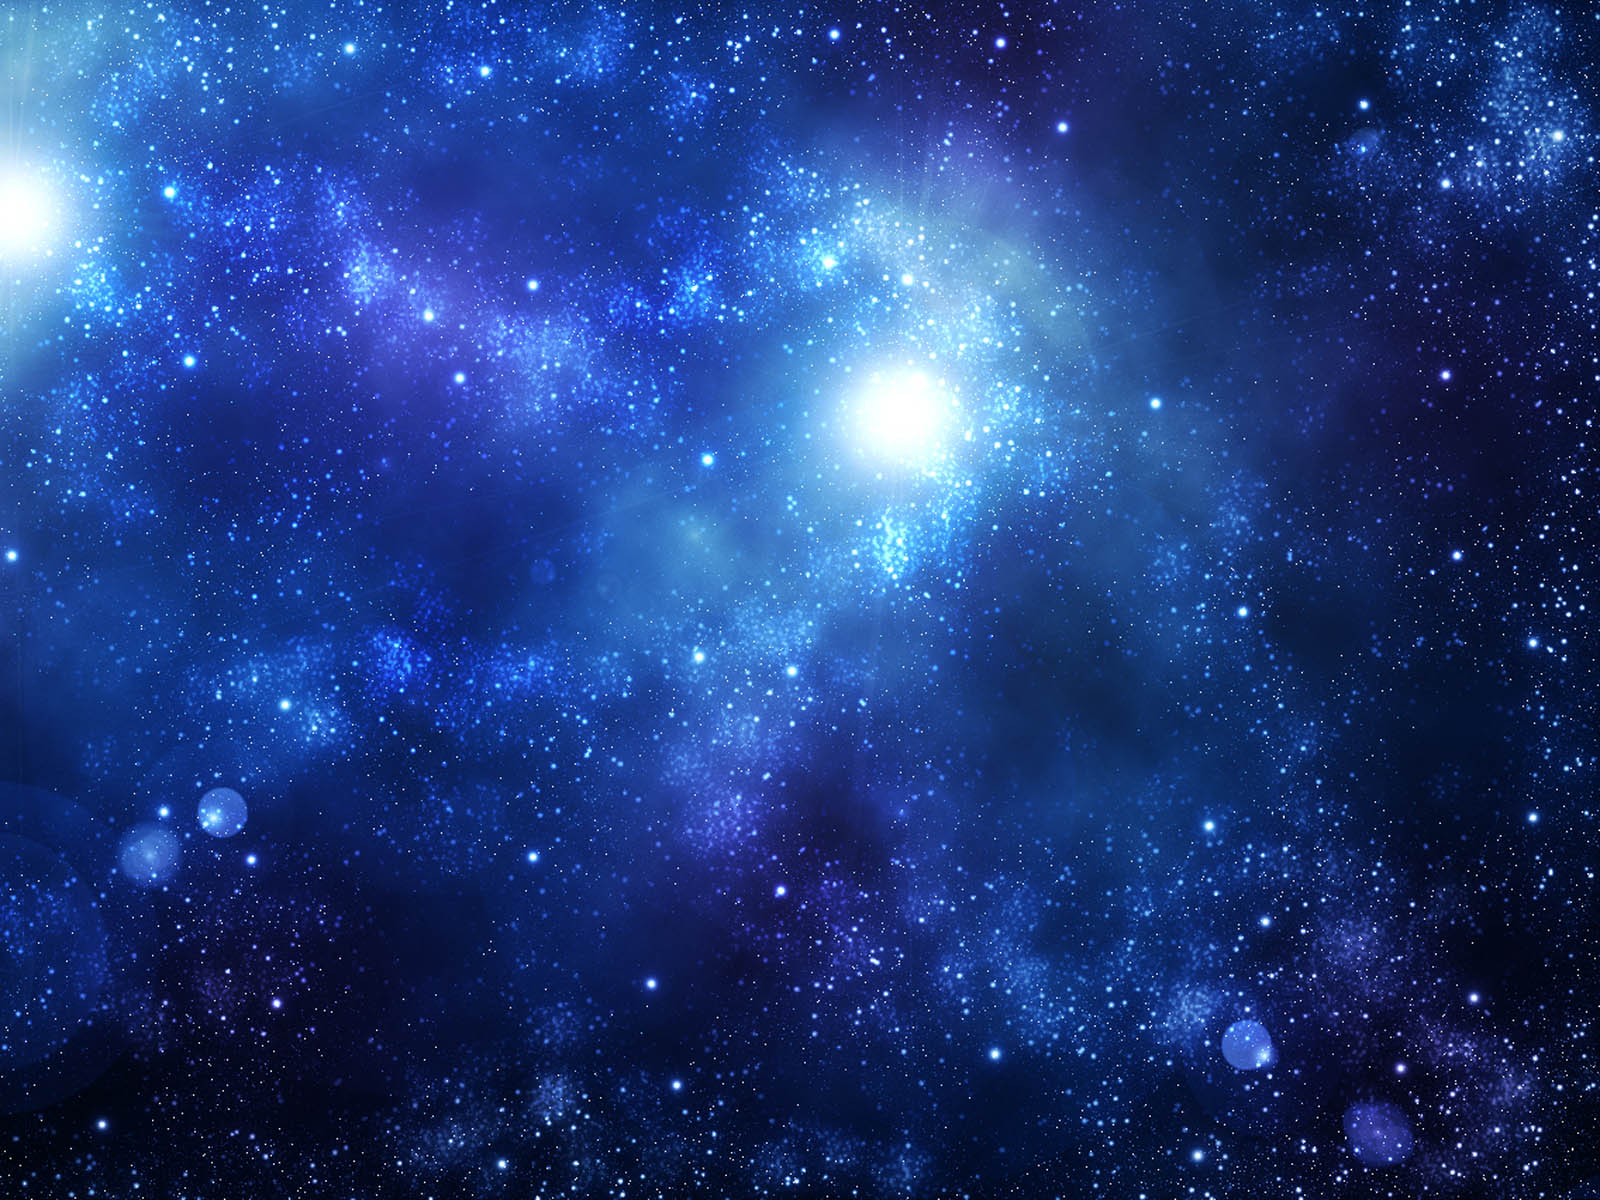 Images For Galaxy Background Tumblr Hipster Blue: Galactic Wallpaper Backgrounds